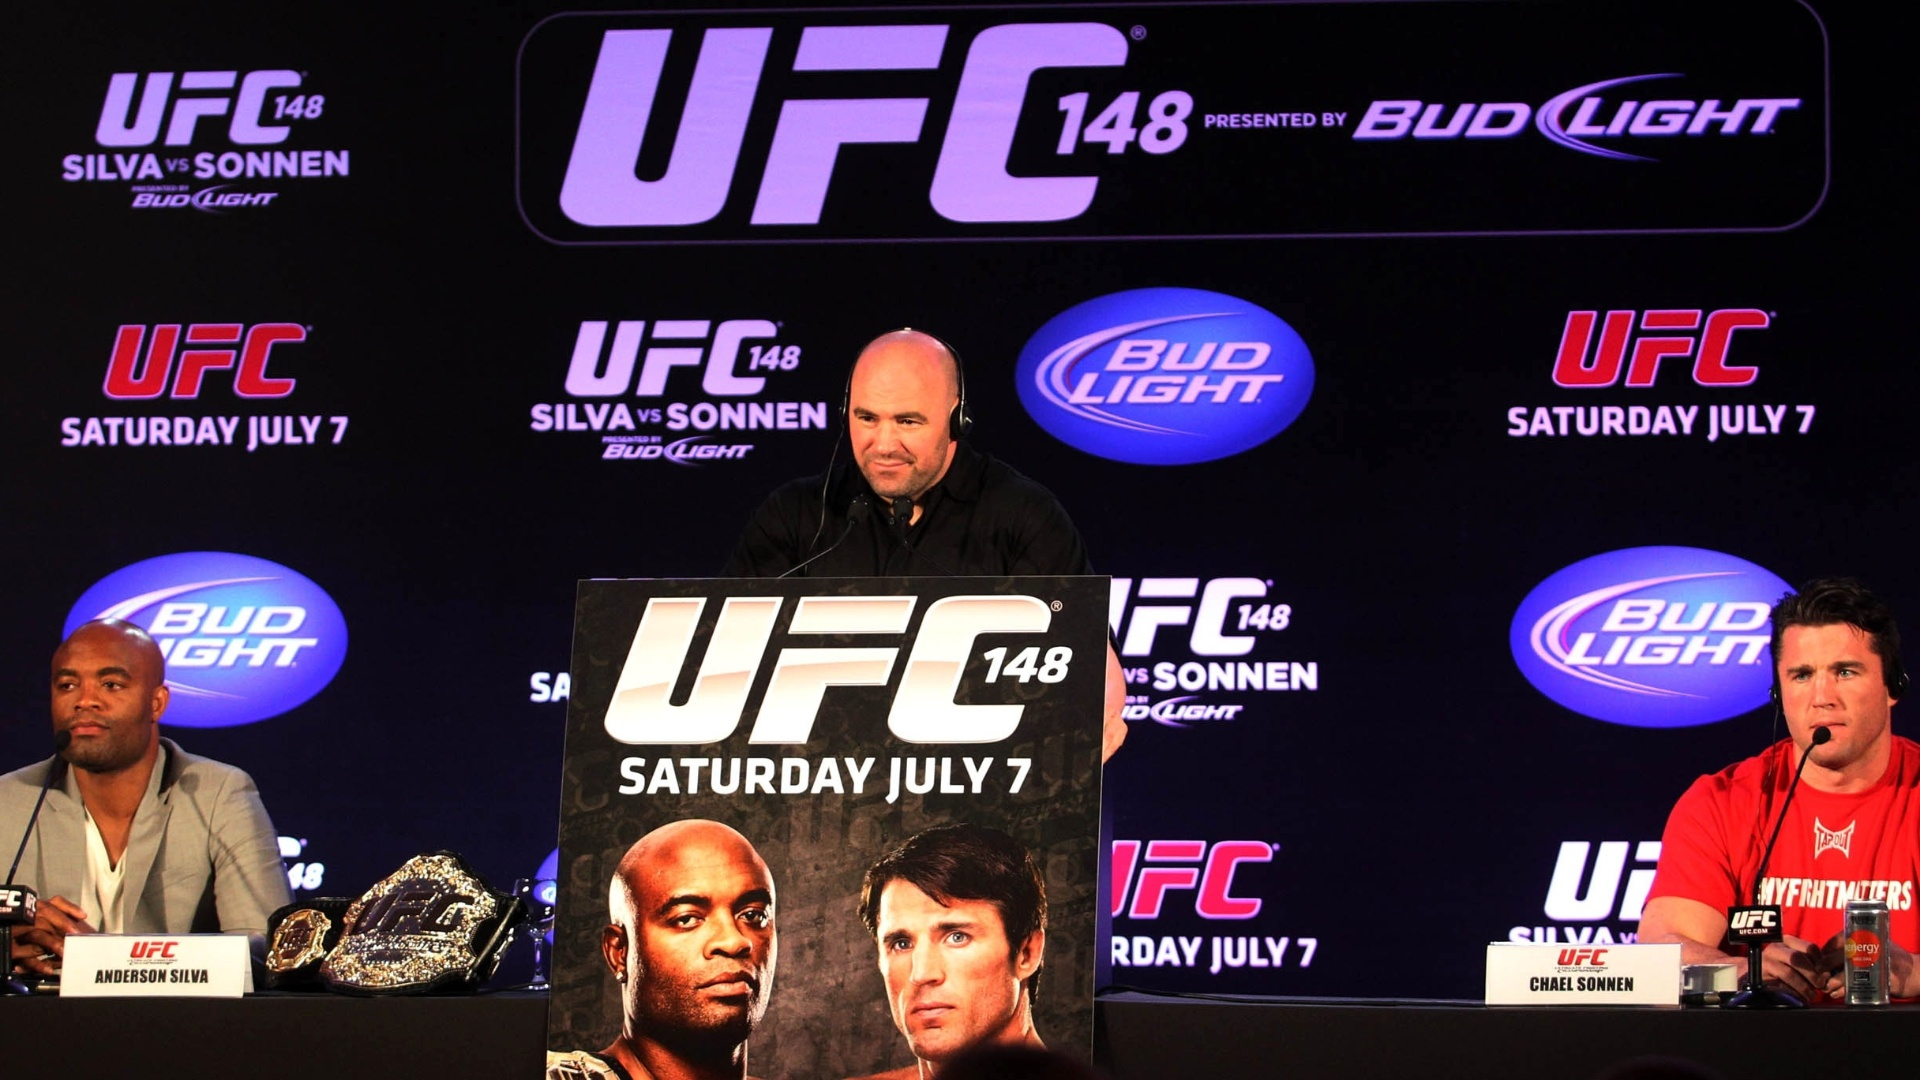 A luta entre Anderson Silva e Chael Sonnen migrou para Las Vegas, no UFC 148, em 7 de julho